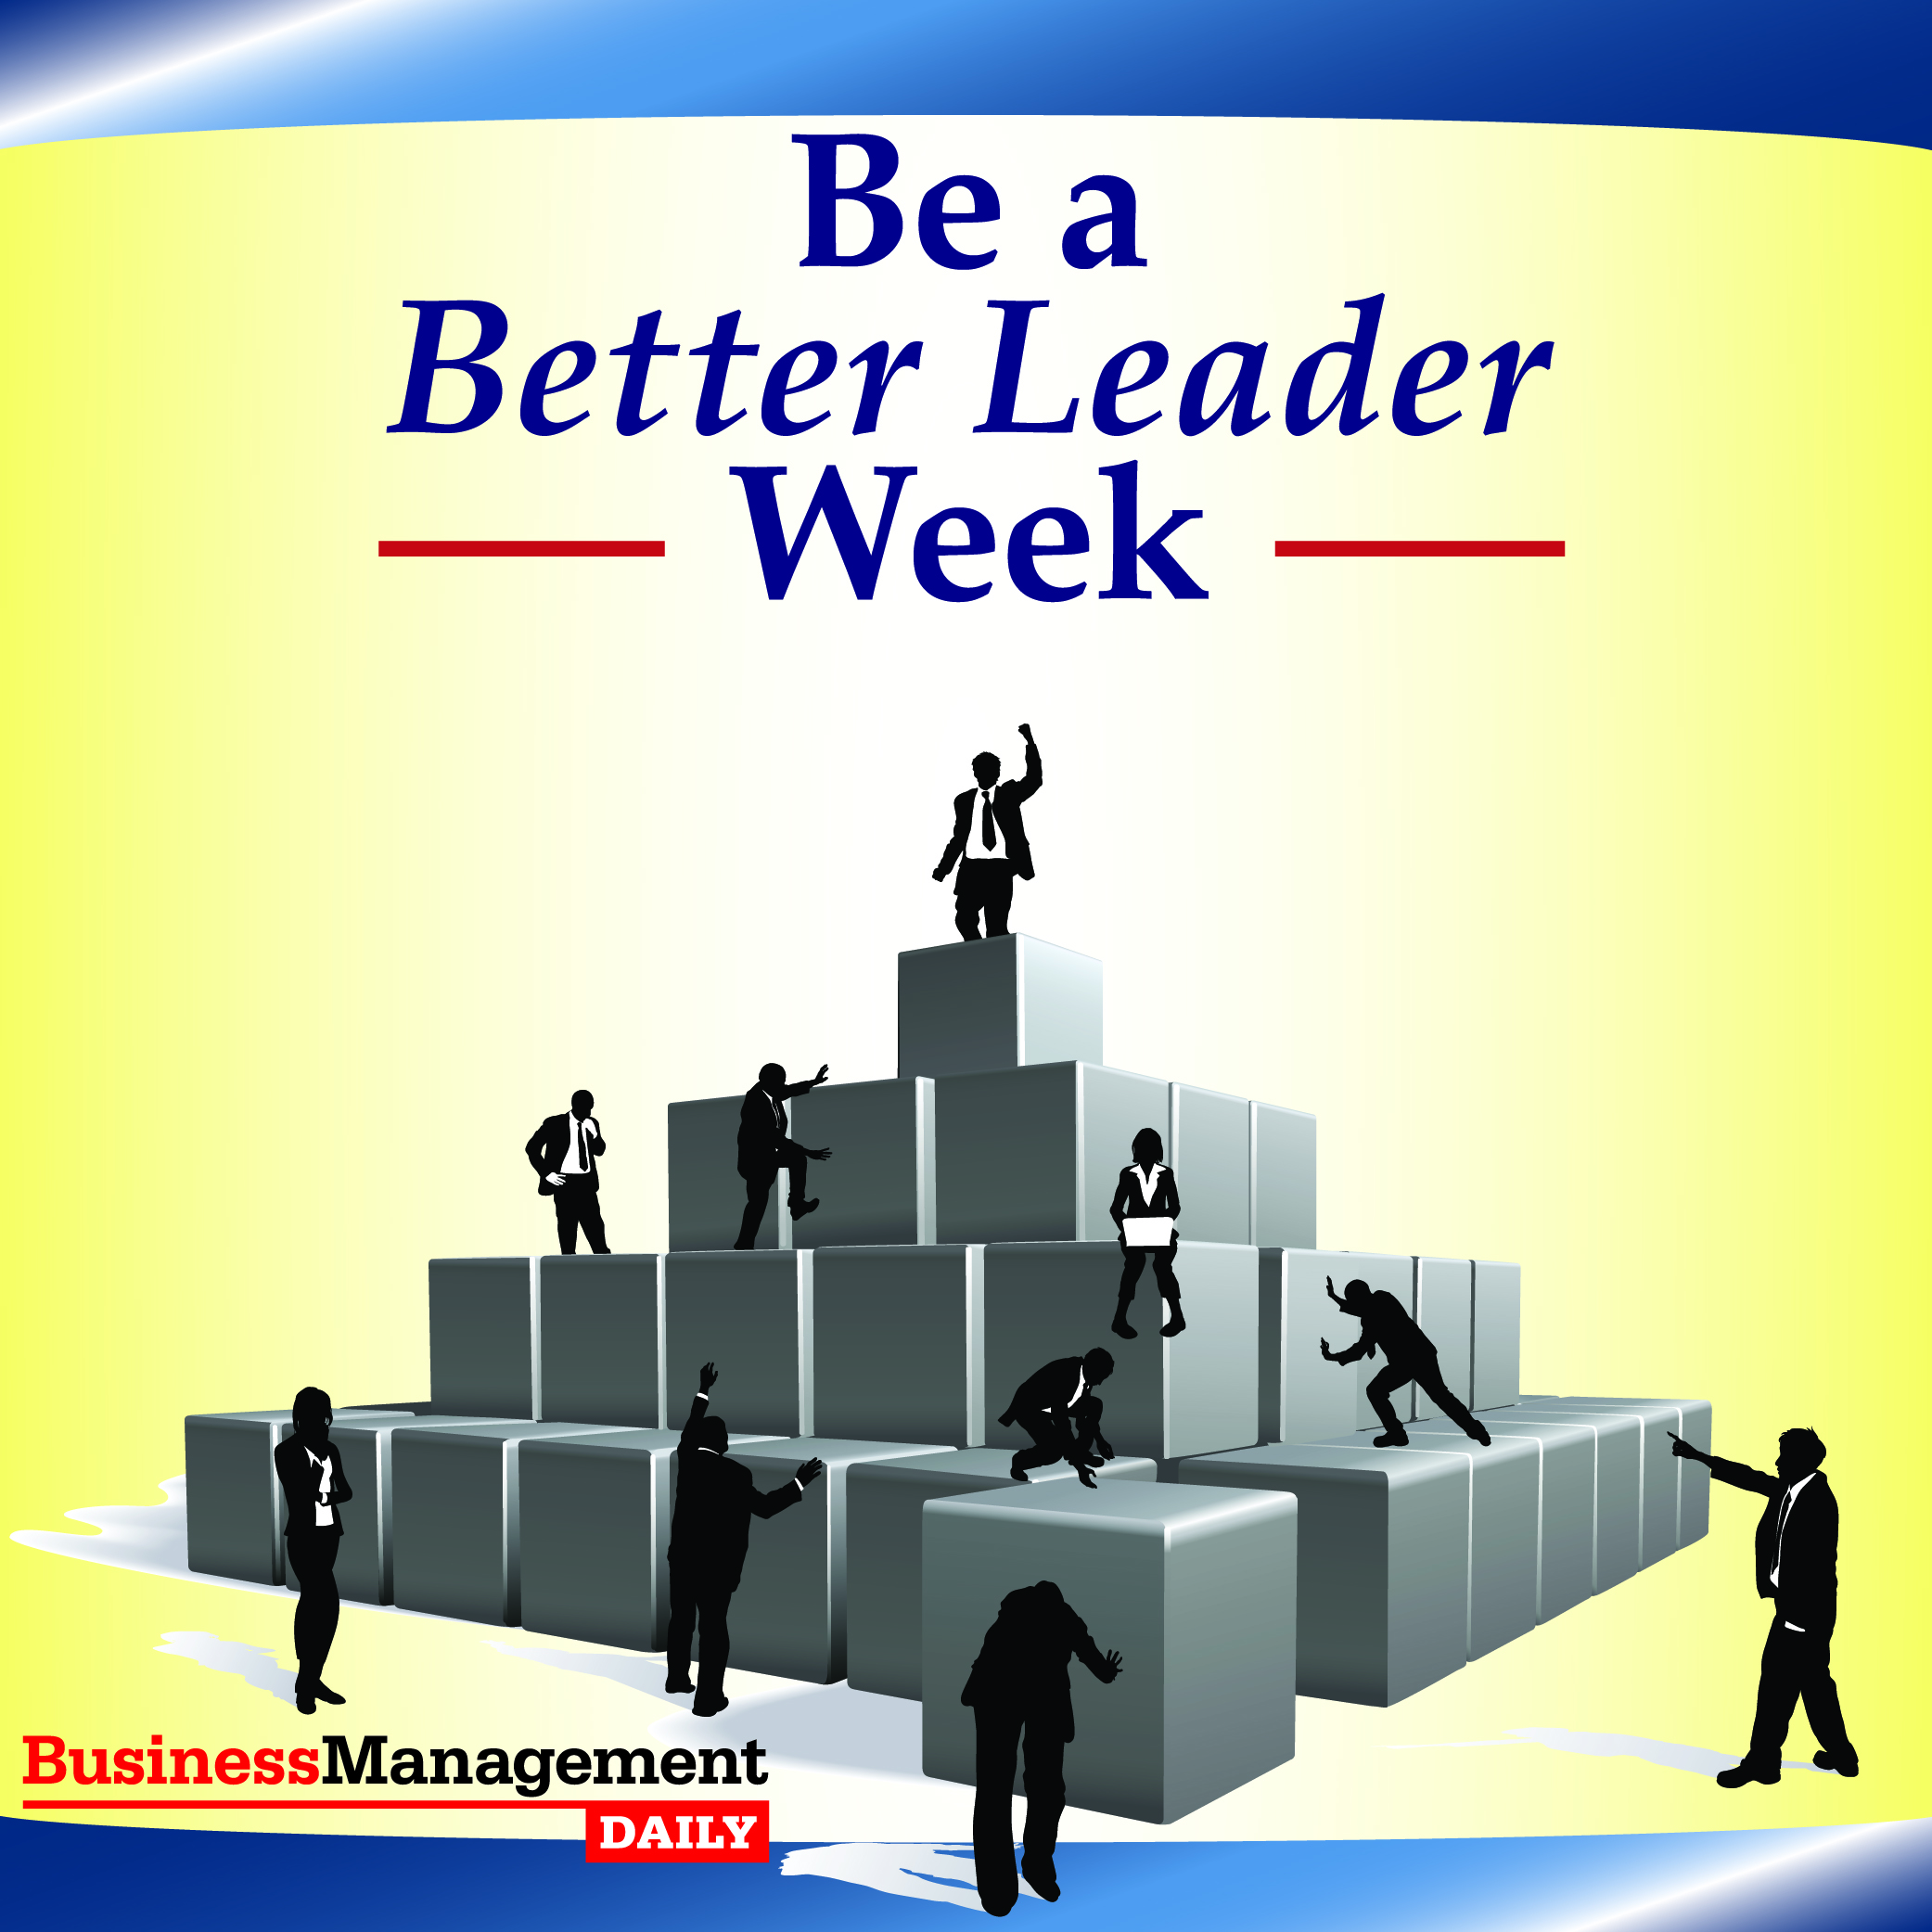 people management week 8 mhigdon This is a fixed (no rotation) plan that uses 21 teams and three 8-hr shifts to provide 24/7 coverage each employee is scheduled to work 5 days, 40 hours per week.